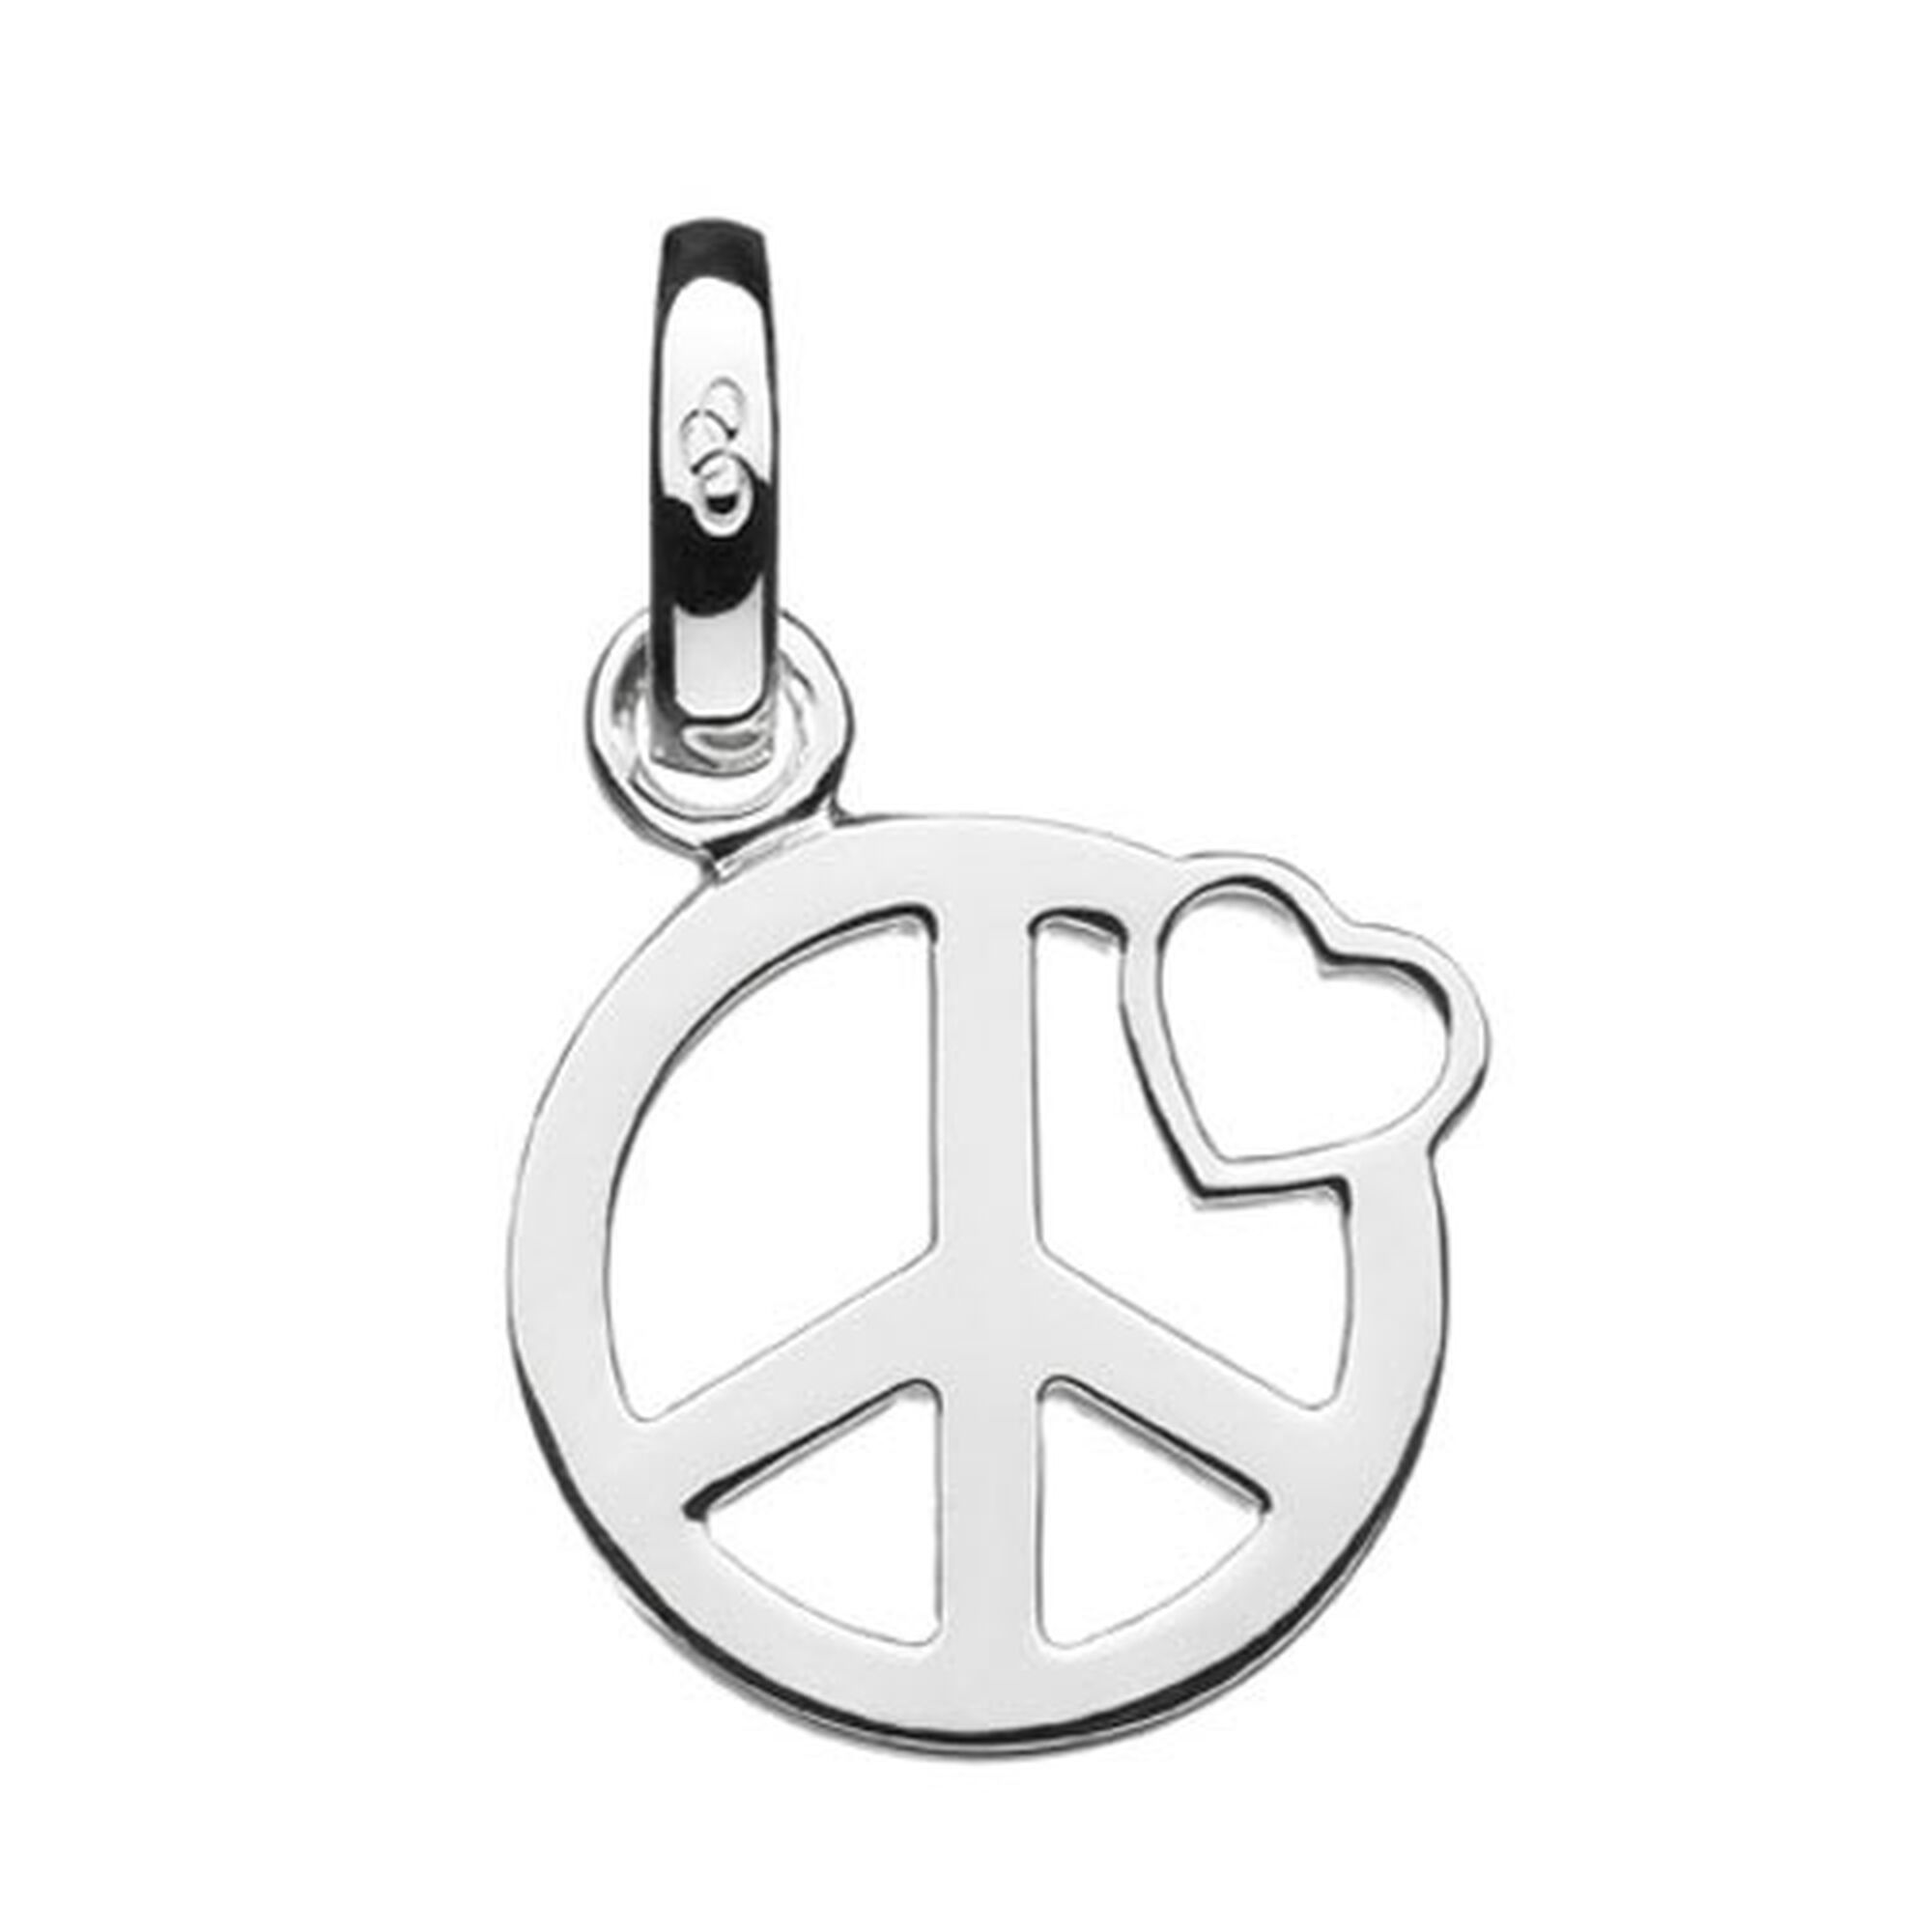 necklace over sterling and pendant jewelry thailand offering dove overstock on orders peace shipping silver free branch olive product watches